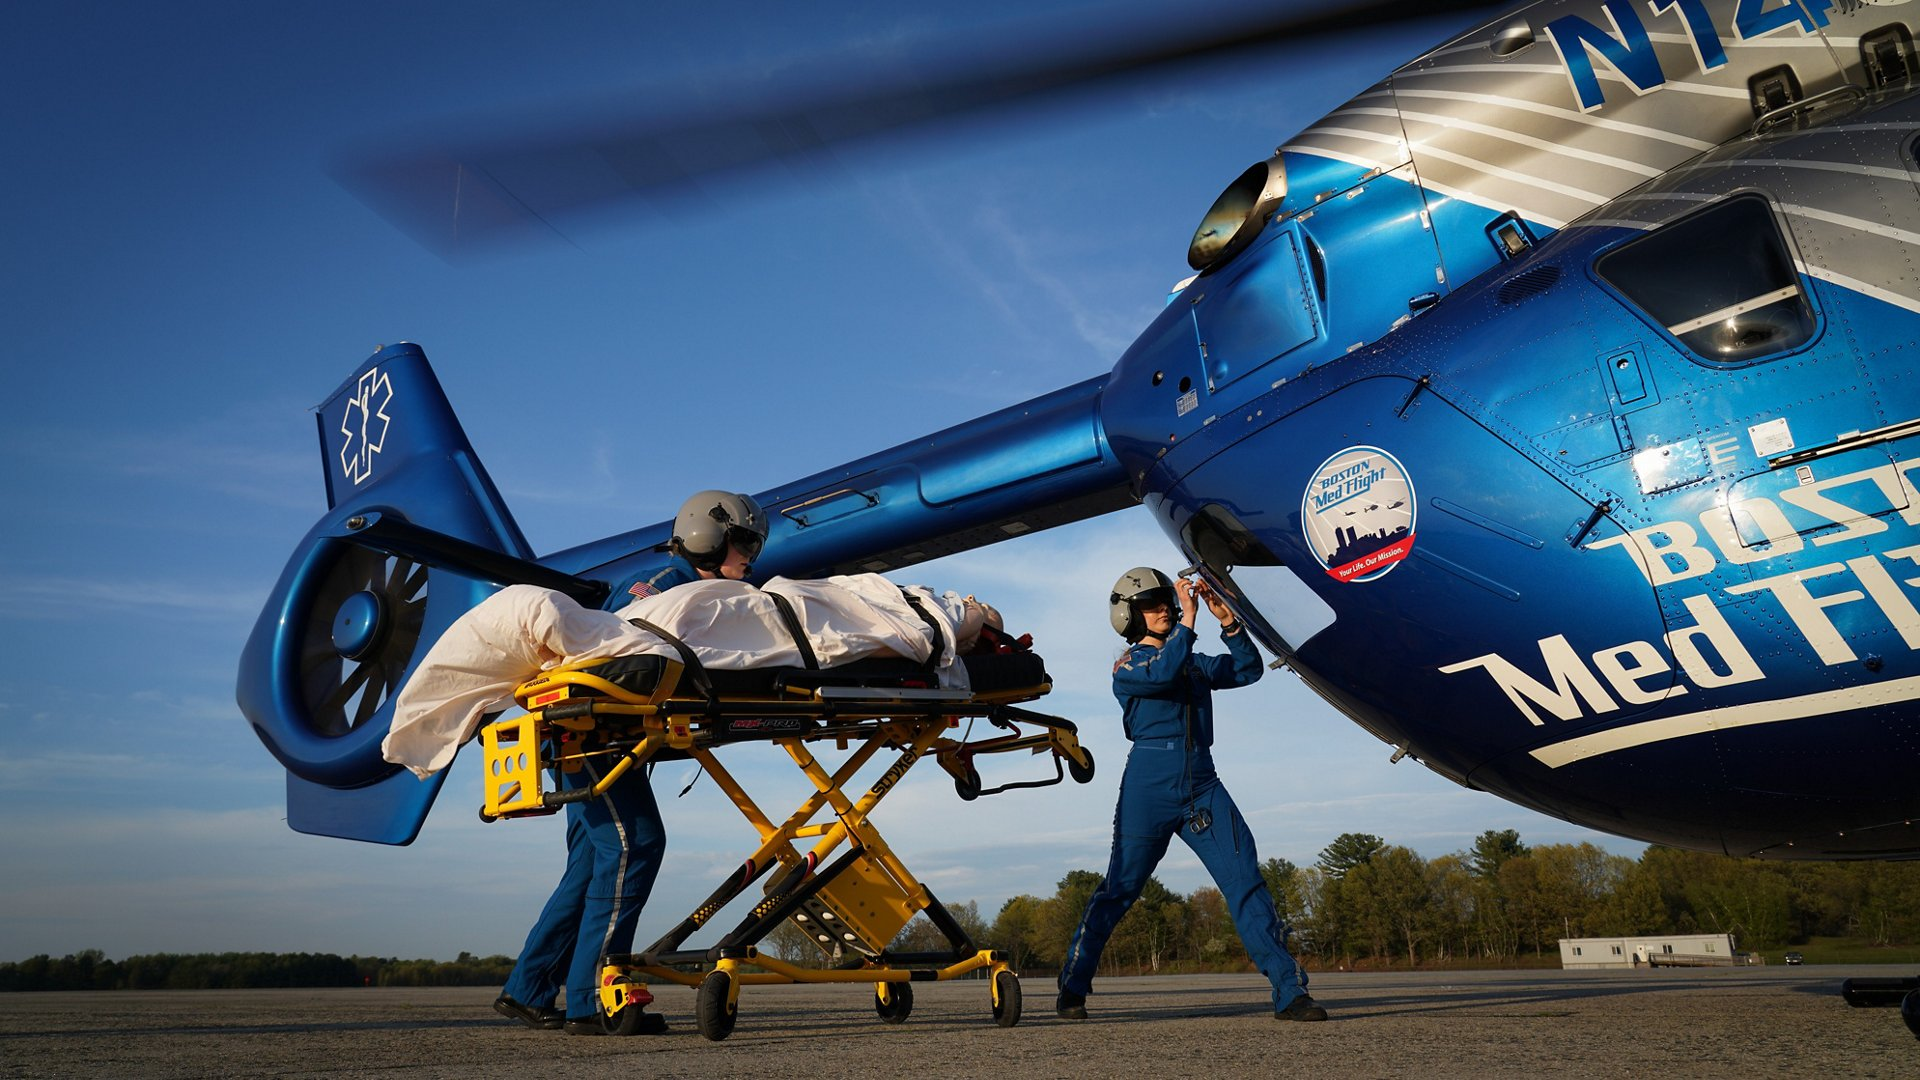 Since their founding in 1985, Boston MedFlight has transported over 70,000 critical care patients to hospitals all across the eastern US state of Massachusetts.